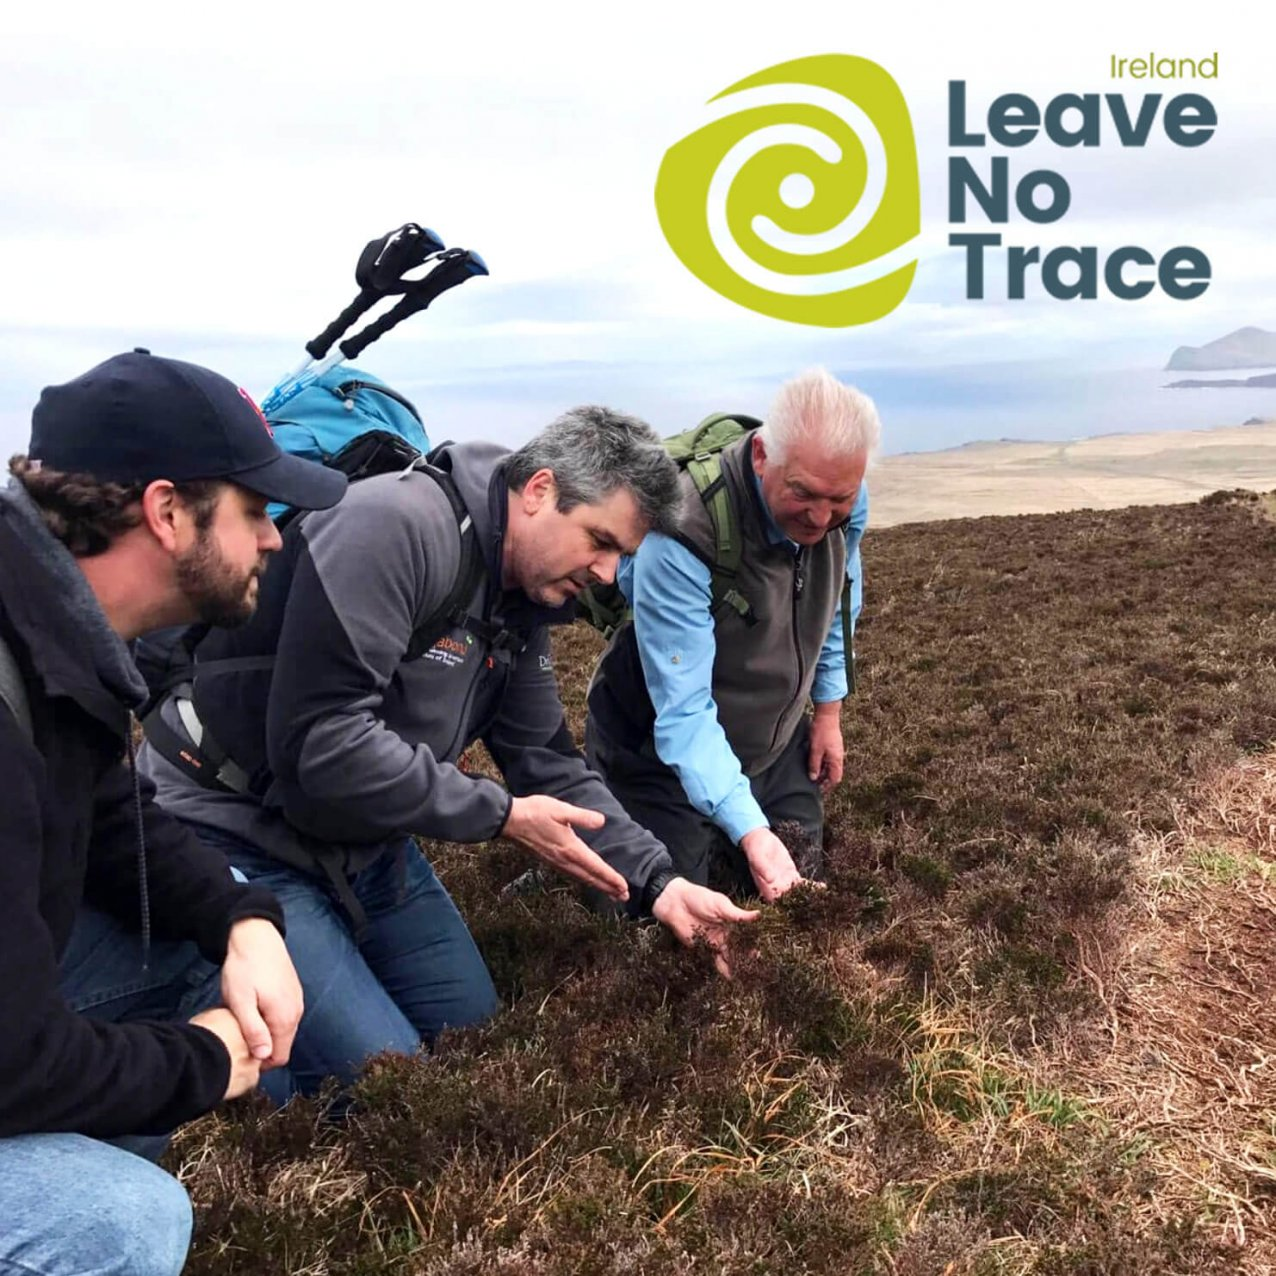 Tour Guide on Leave No Trace training in Ireland